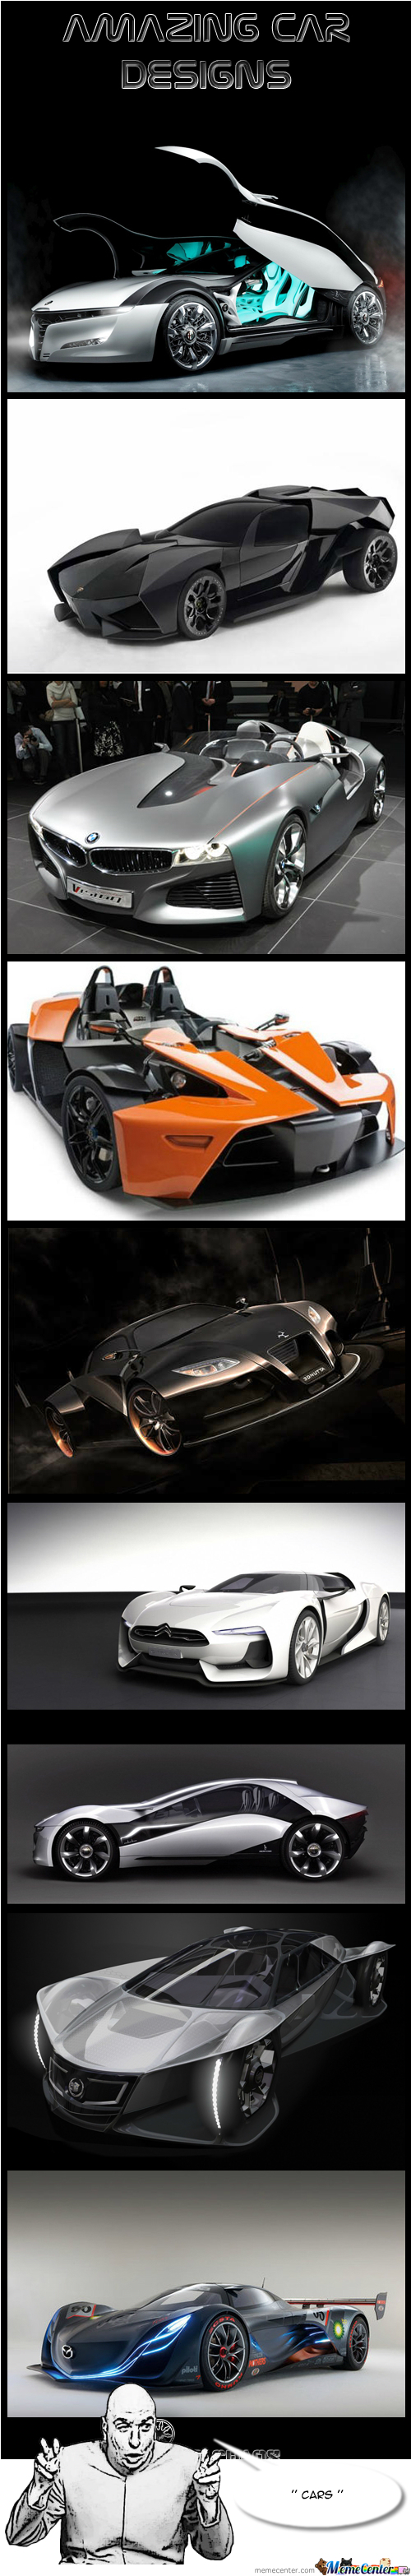 [RMX] Amazing Car Designs